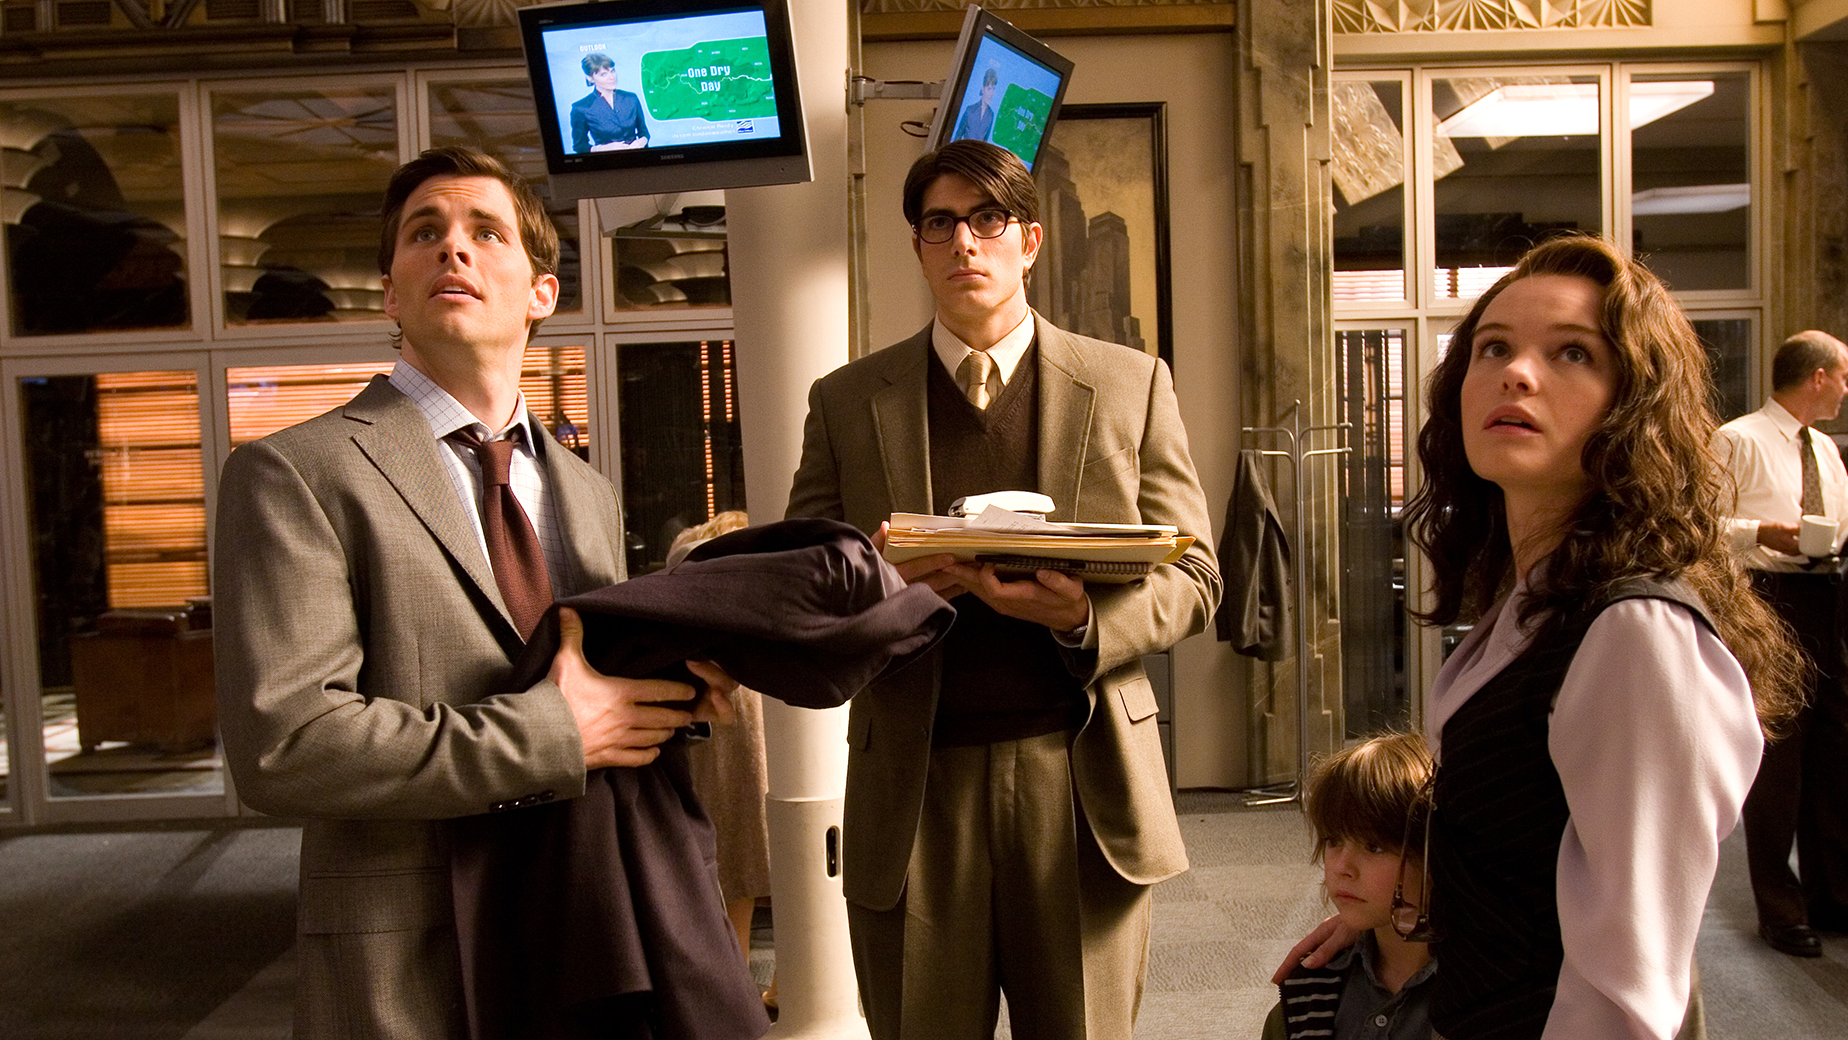 (left to right) Lois Lane's fiancé Richard White (JAMES MARSDEN) along with Clark Kent (BRANDON ROUTH), Lois's son Jason (TRISTAN LAKE LEABU) and Lois herself (KATE BOSWORTH) work after hours at the Daily Planet to cover the story of the century, the return of Superman, in Warner Bros. Pictures' and Legendary Pictures' action adventure Superman Returns.PHOTOGRAPHS TO BE USED SOLELY FOR ADVERTISING, PROMOTION, PUBLICITY OR REVIEWS OF THIS SPECIFIC MOTION PICTURE AND TO REMAIN THE PROPERTY OF THE STUDIO. NOT FOR SALE OR REDISTRIBUTION. ALL RIGHTS RESERVED.